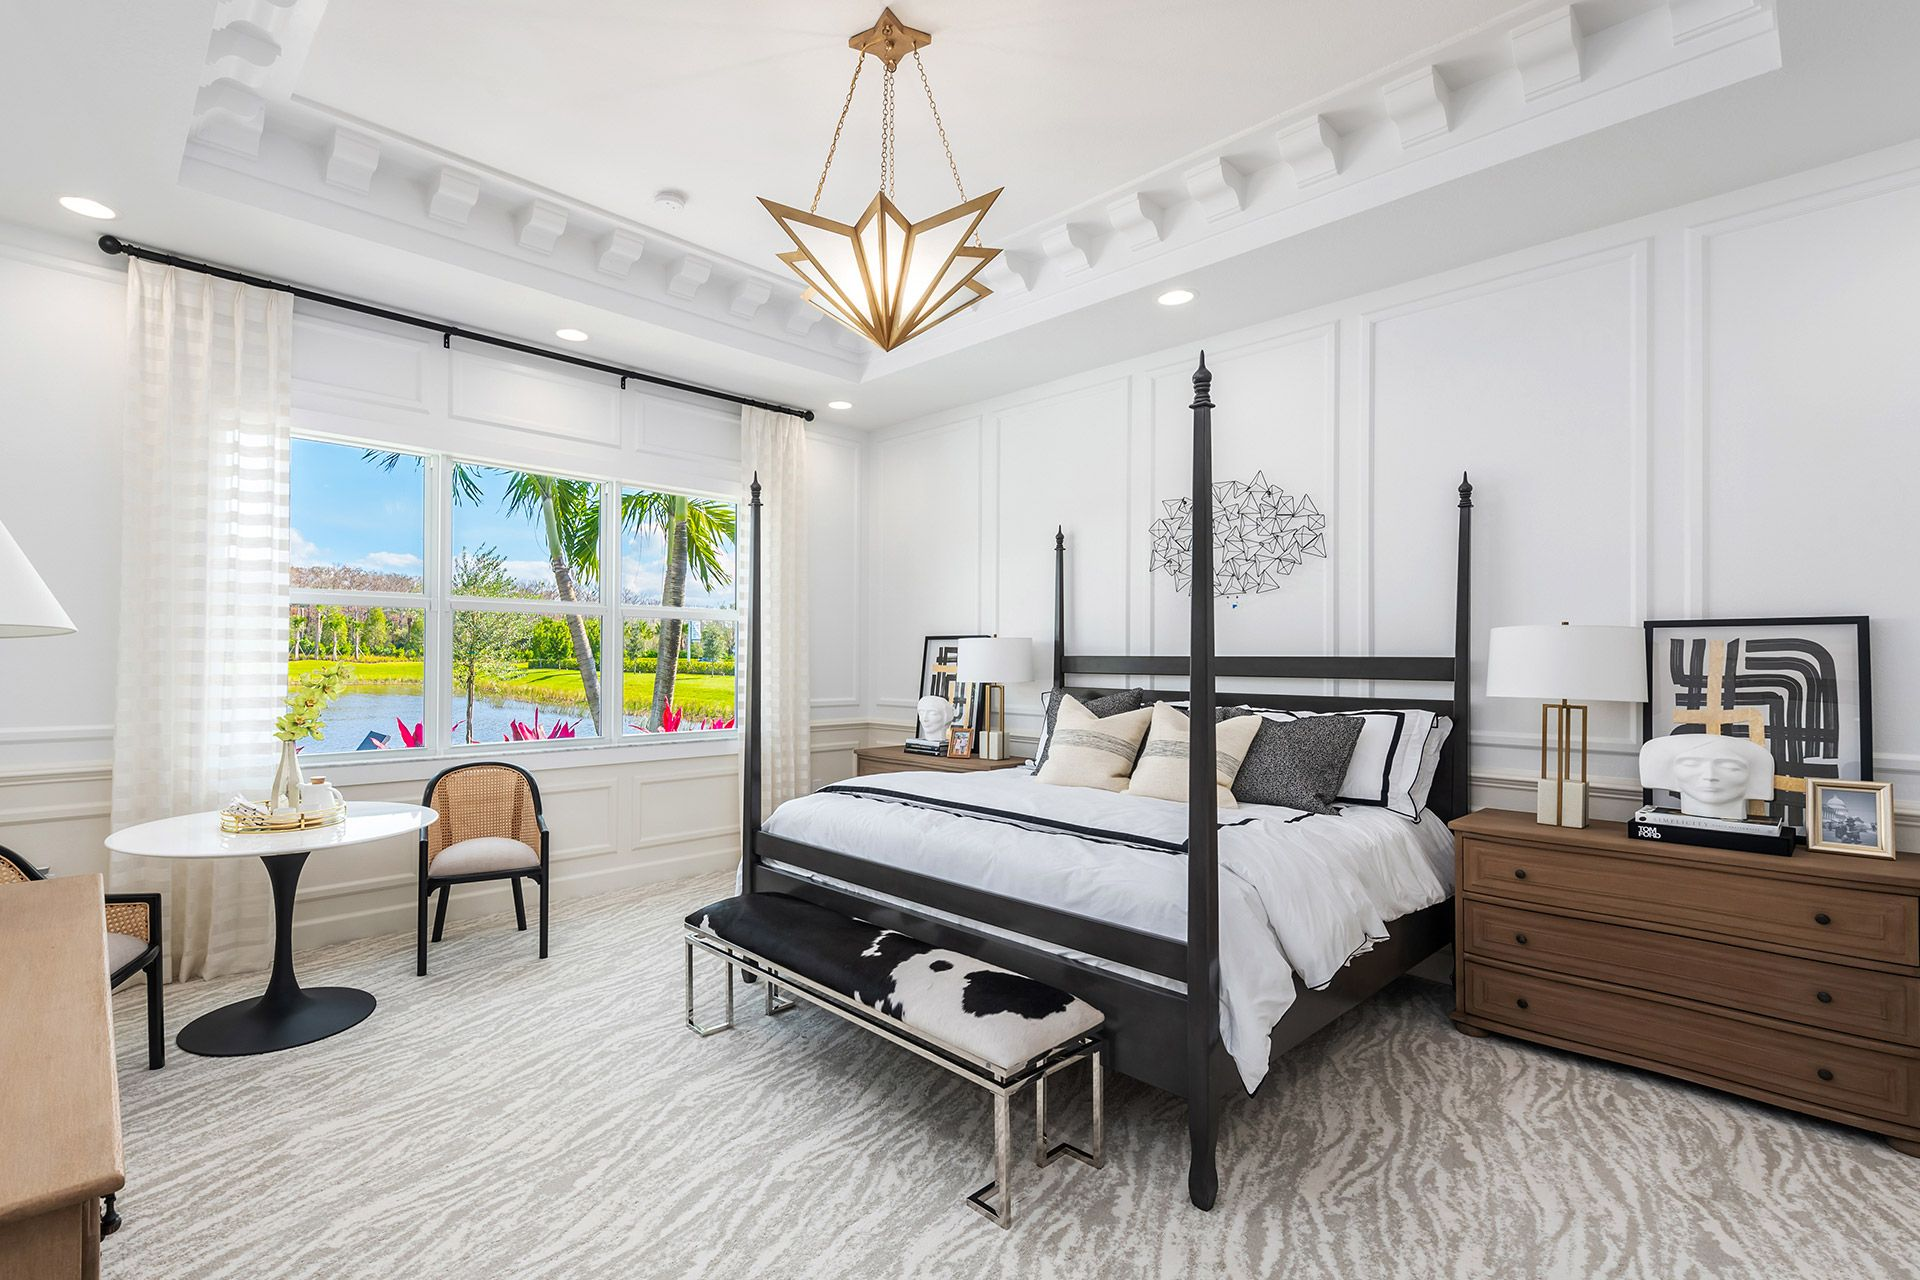 Bedroom featured in the Estero By GL Homes in Naples, FL